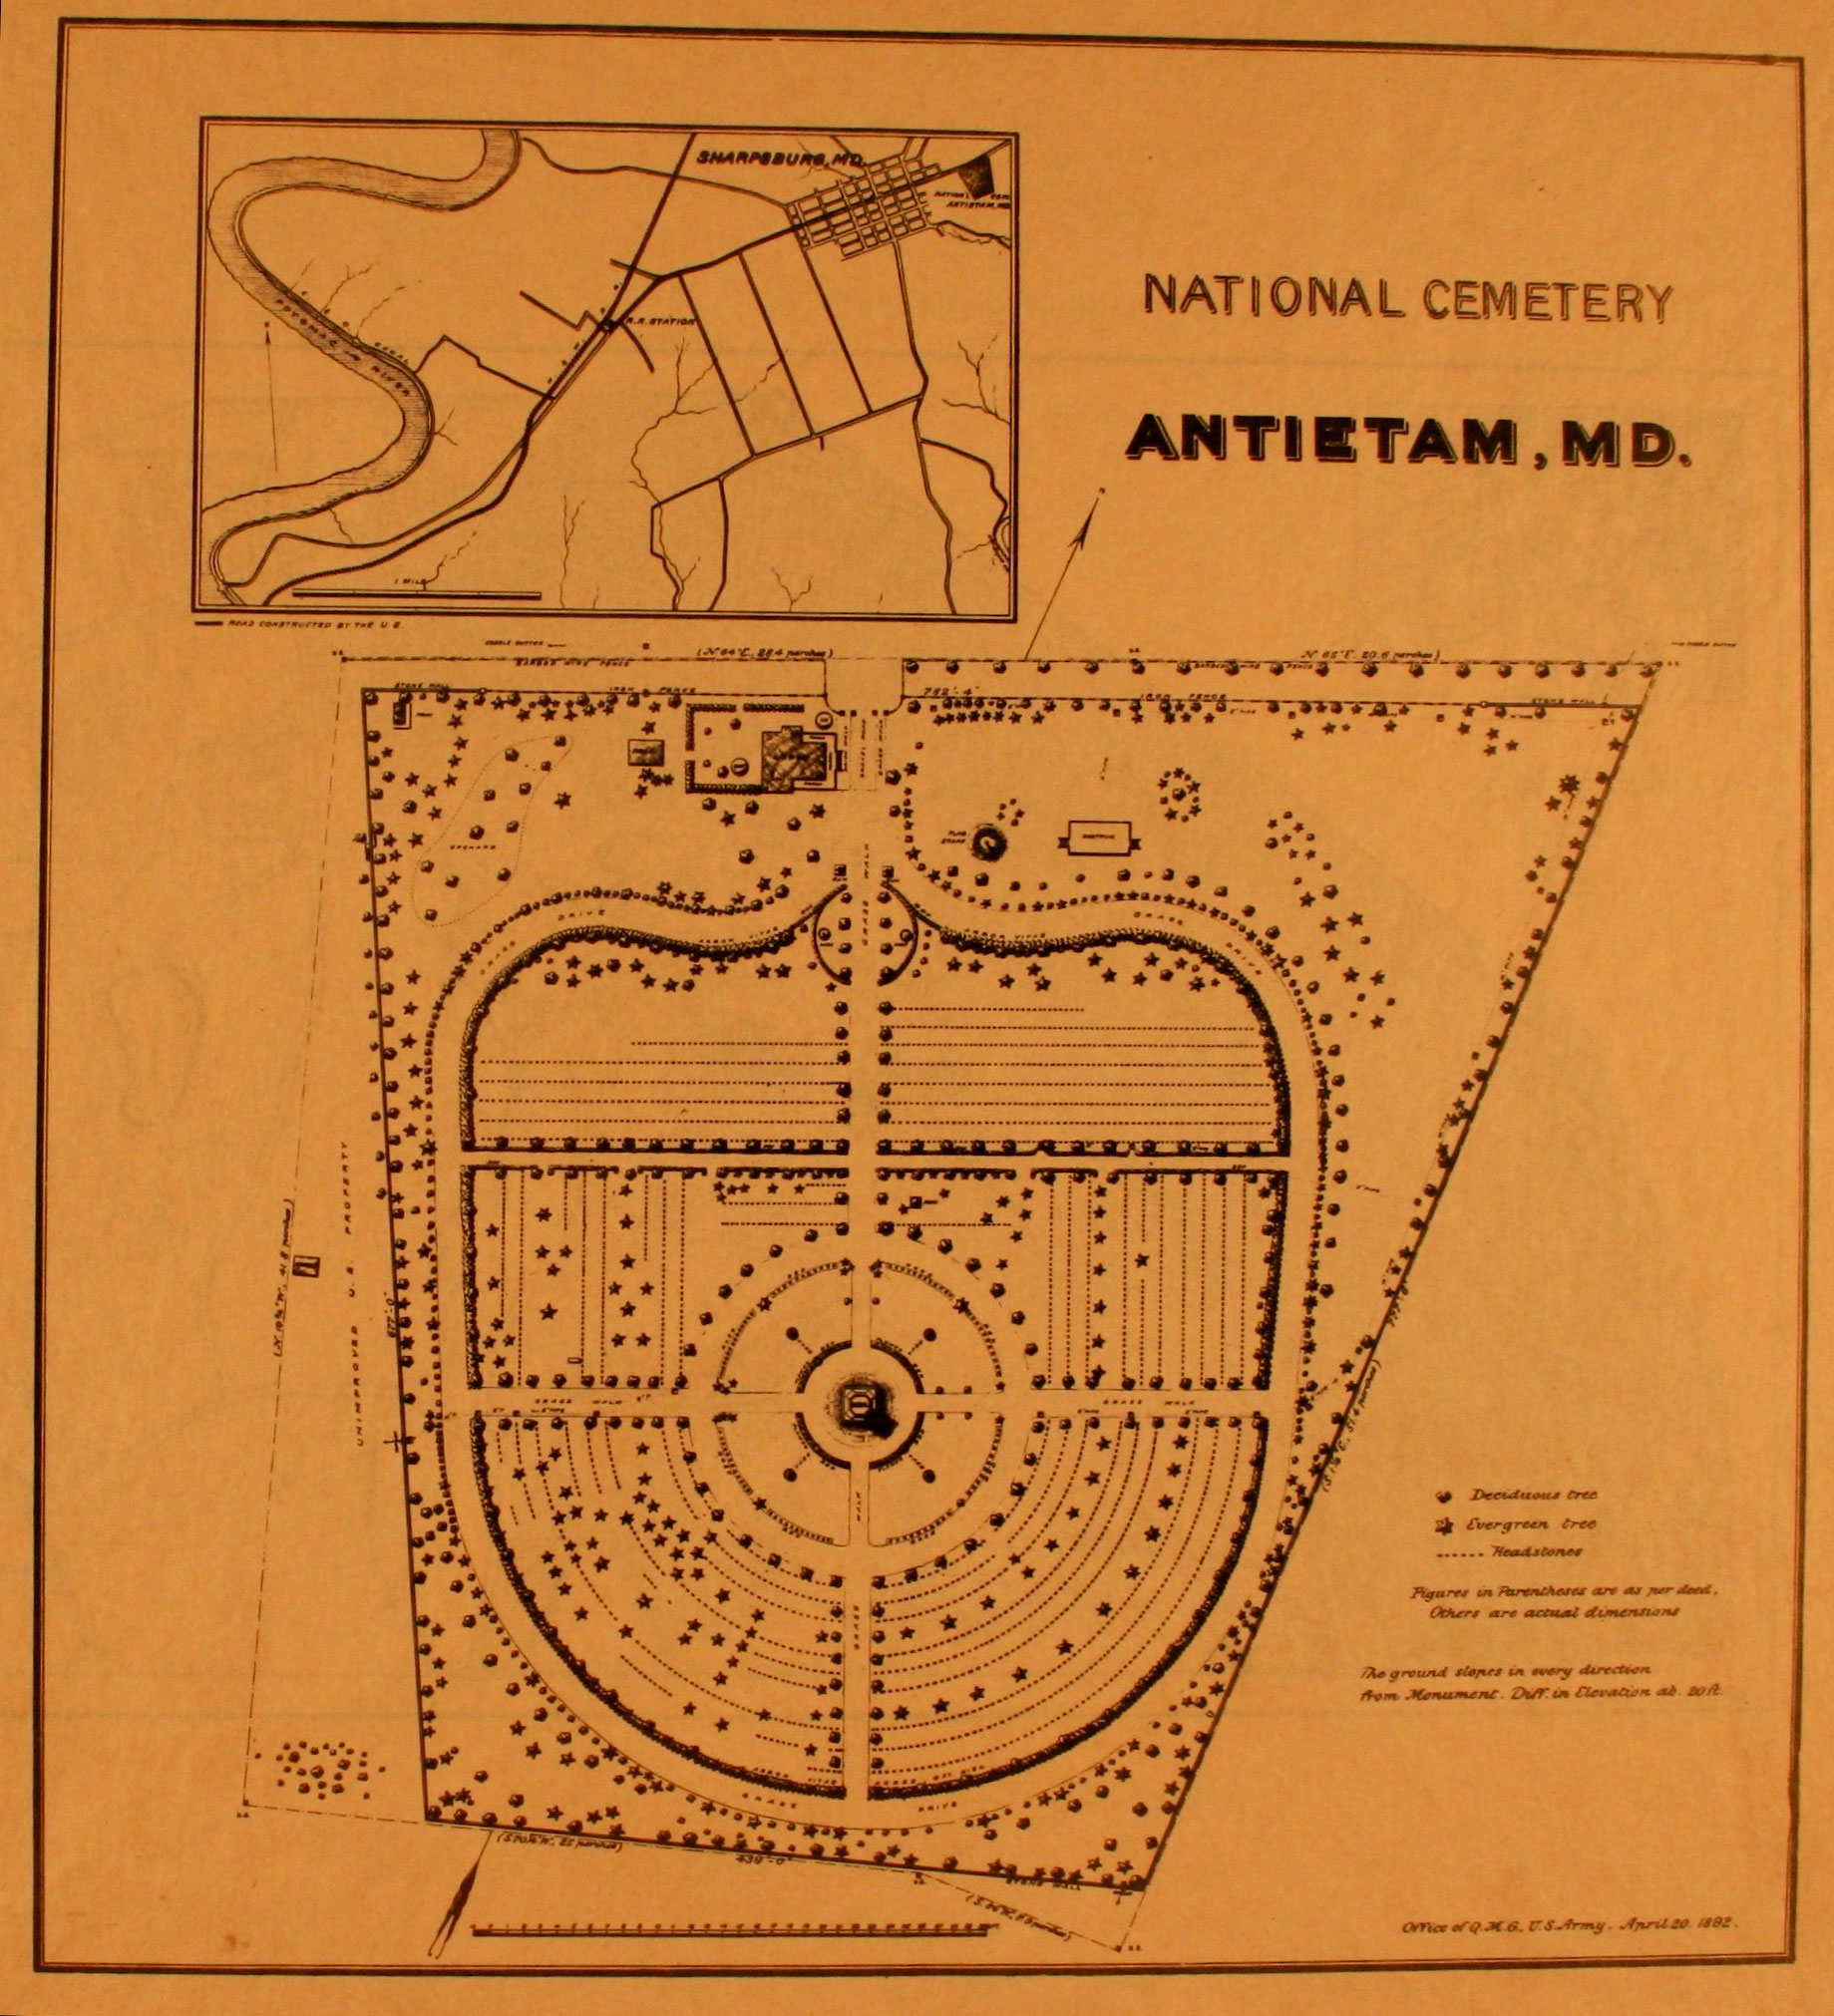 antietam national cemetery map